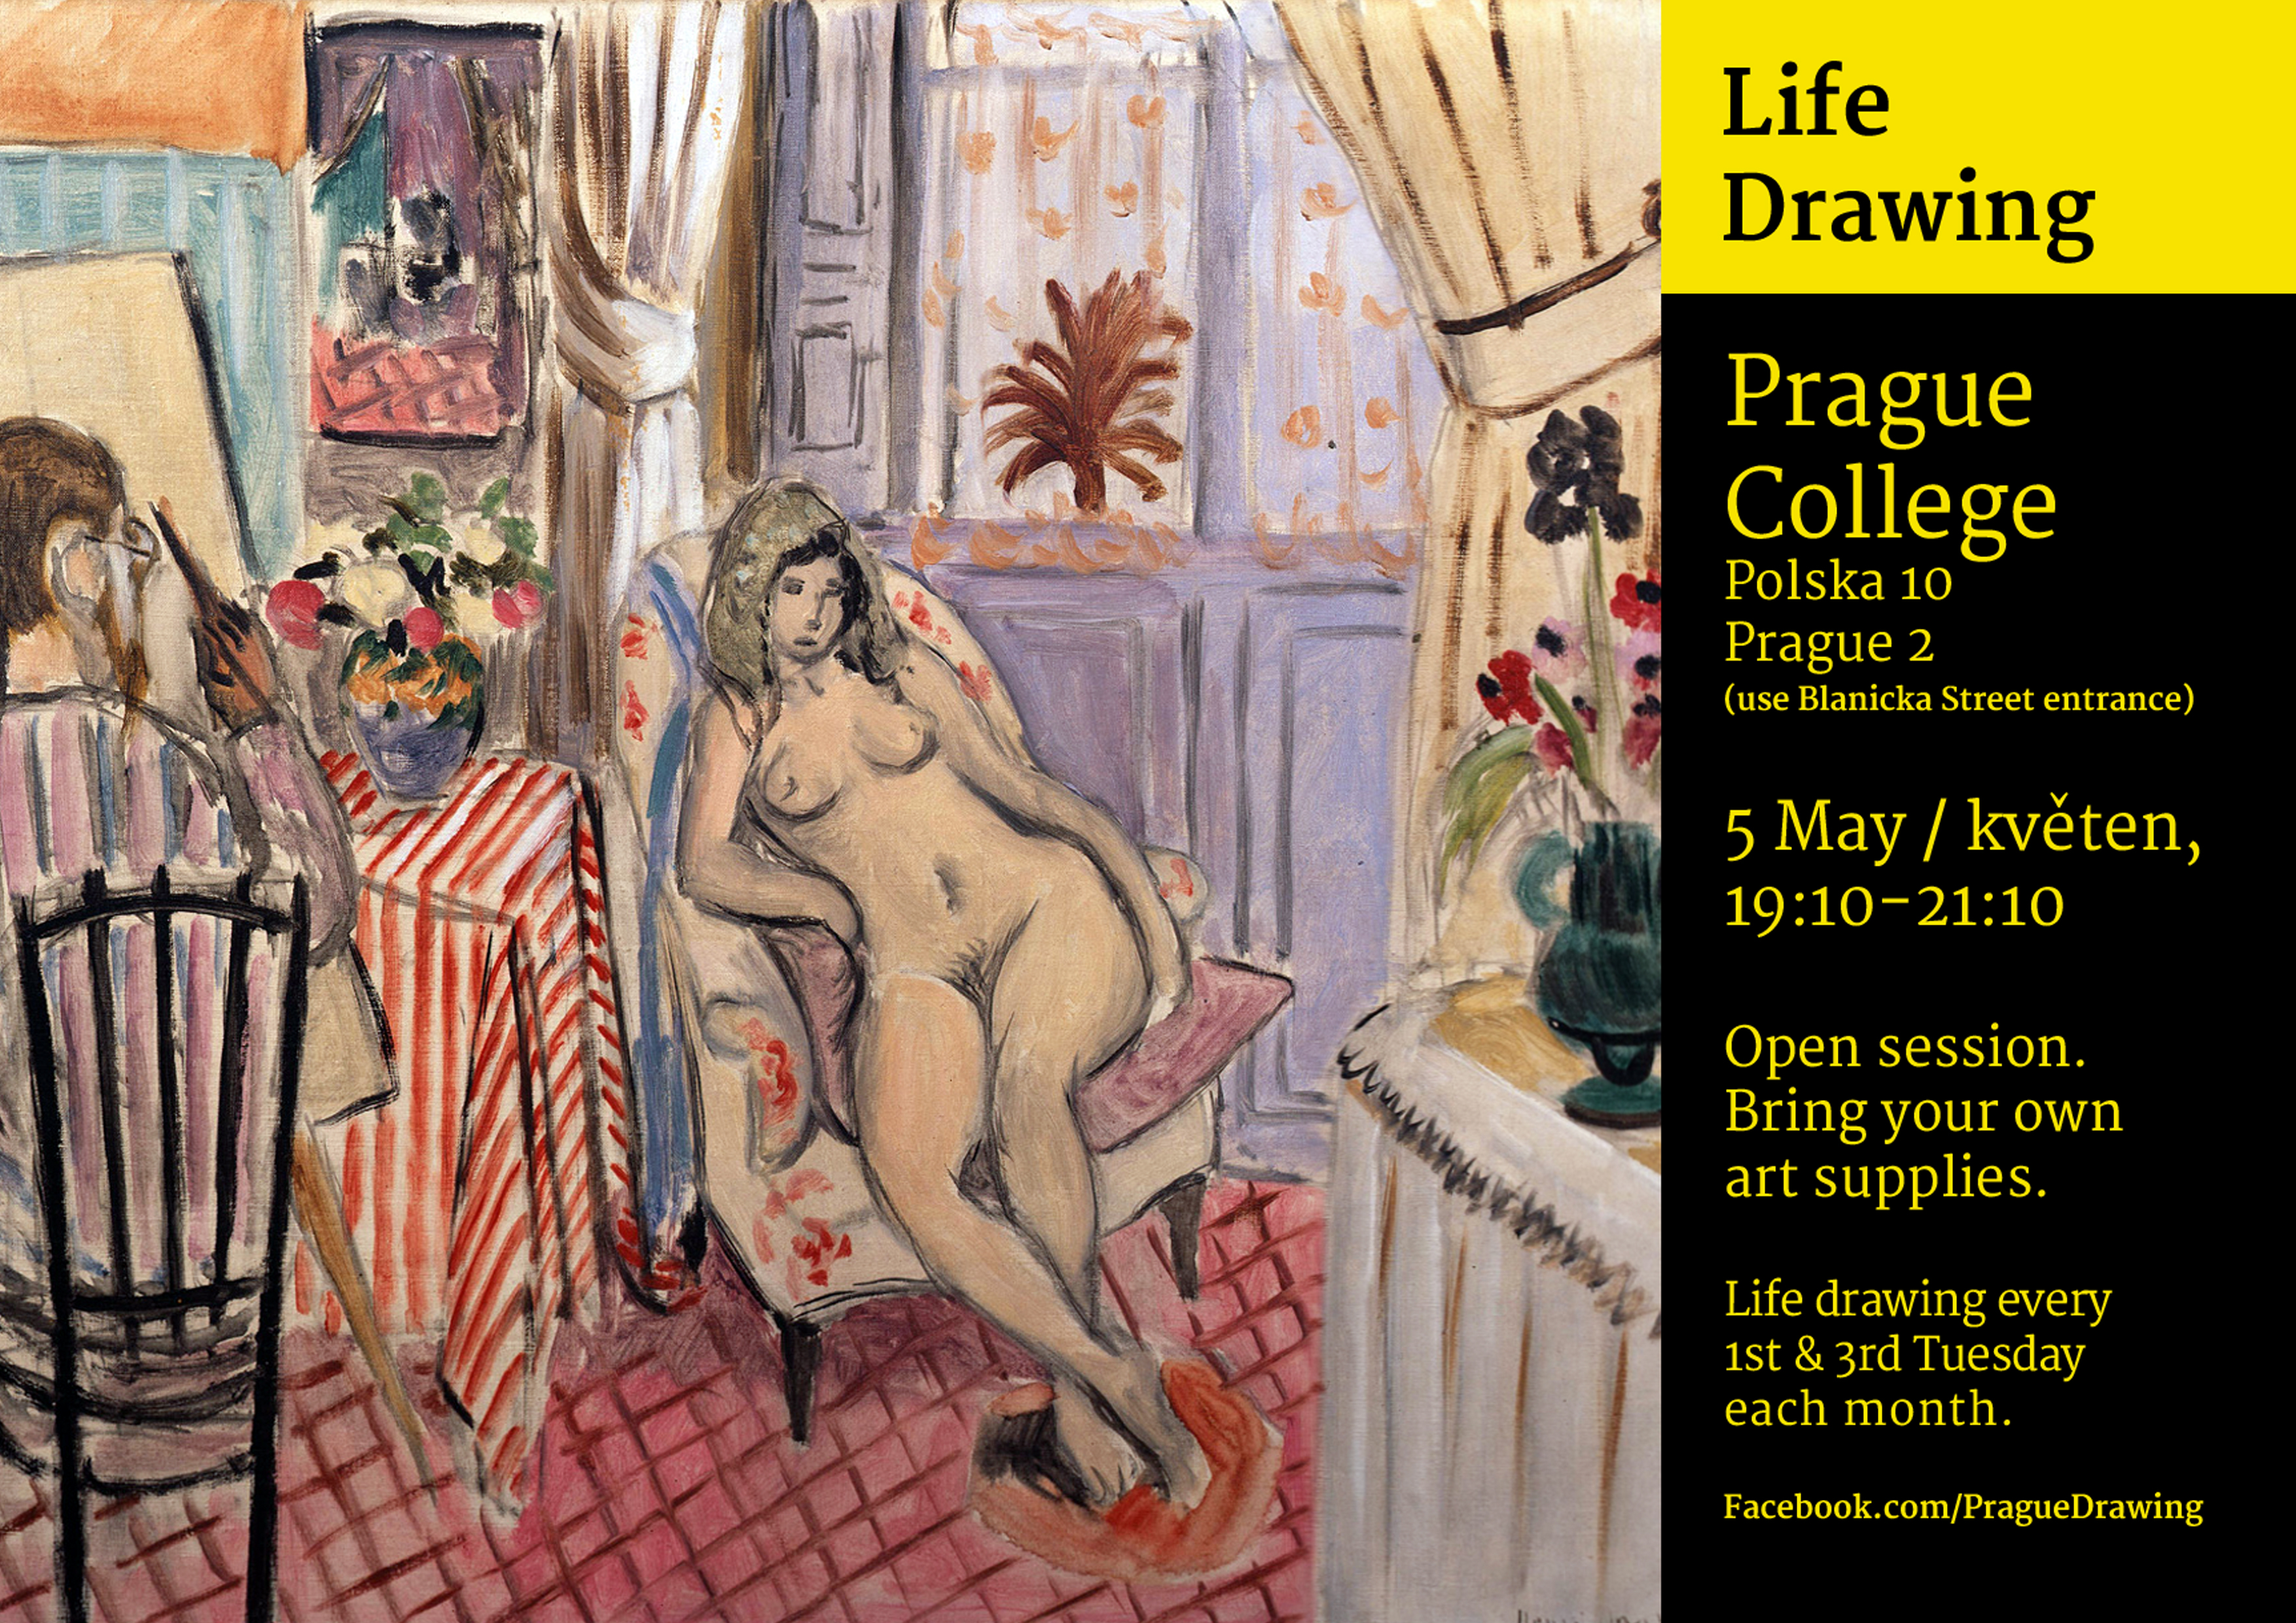 Come along to Life Drawing classes!